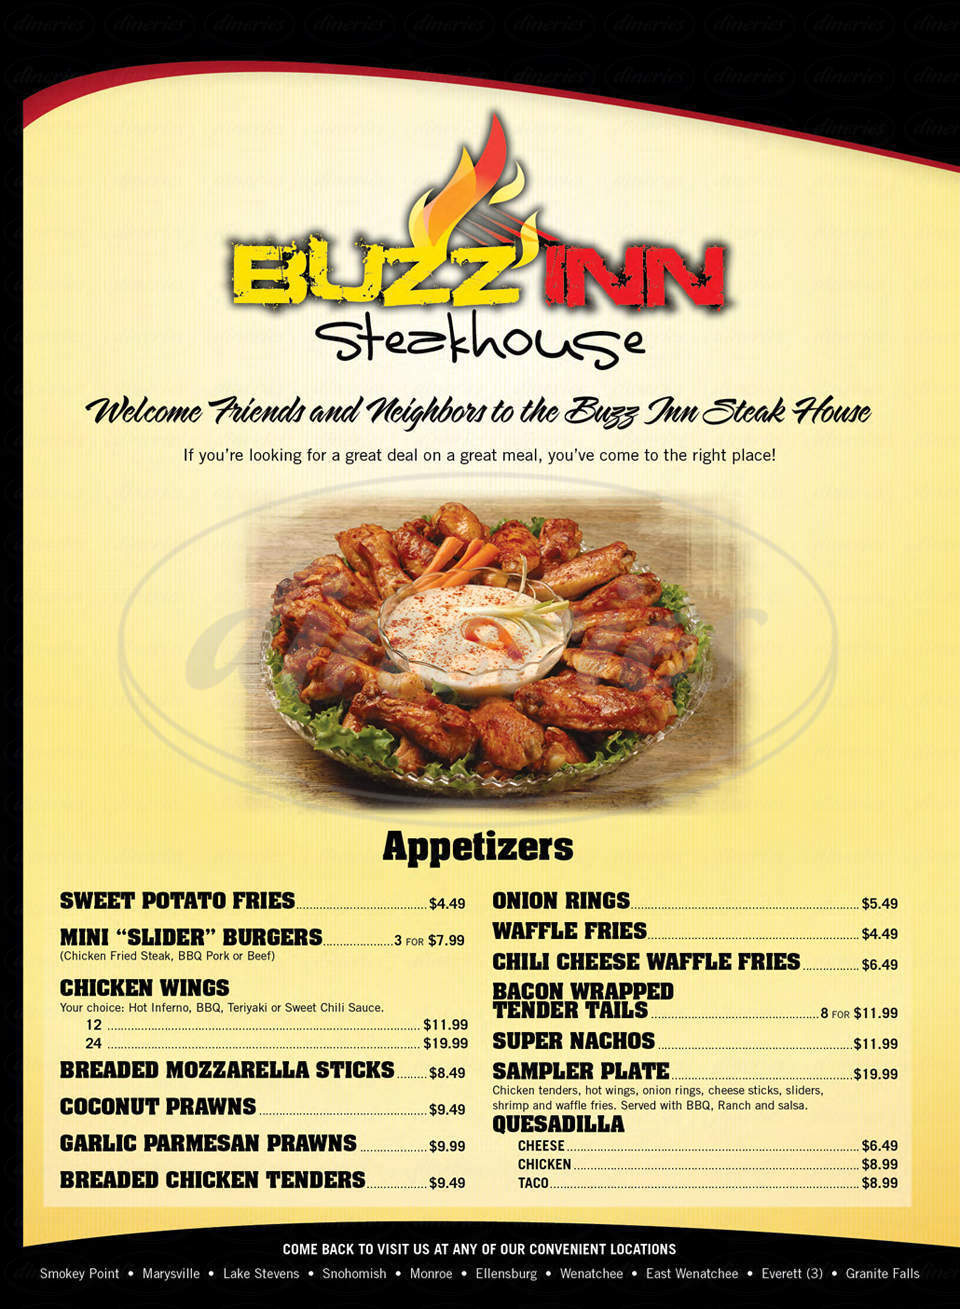 menu for Buzz Inn Steakhouse